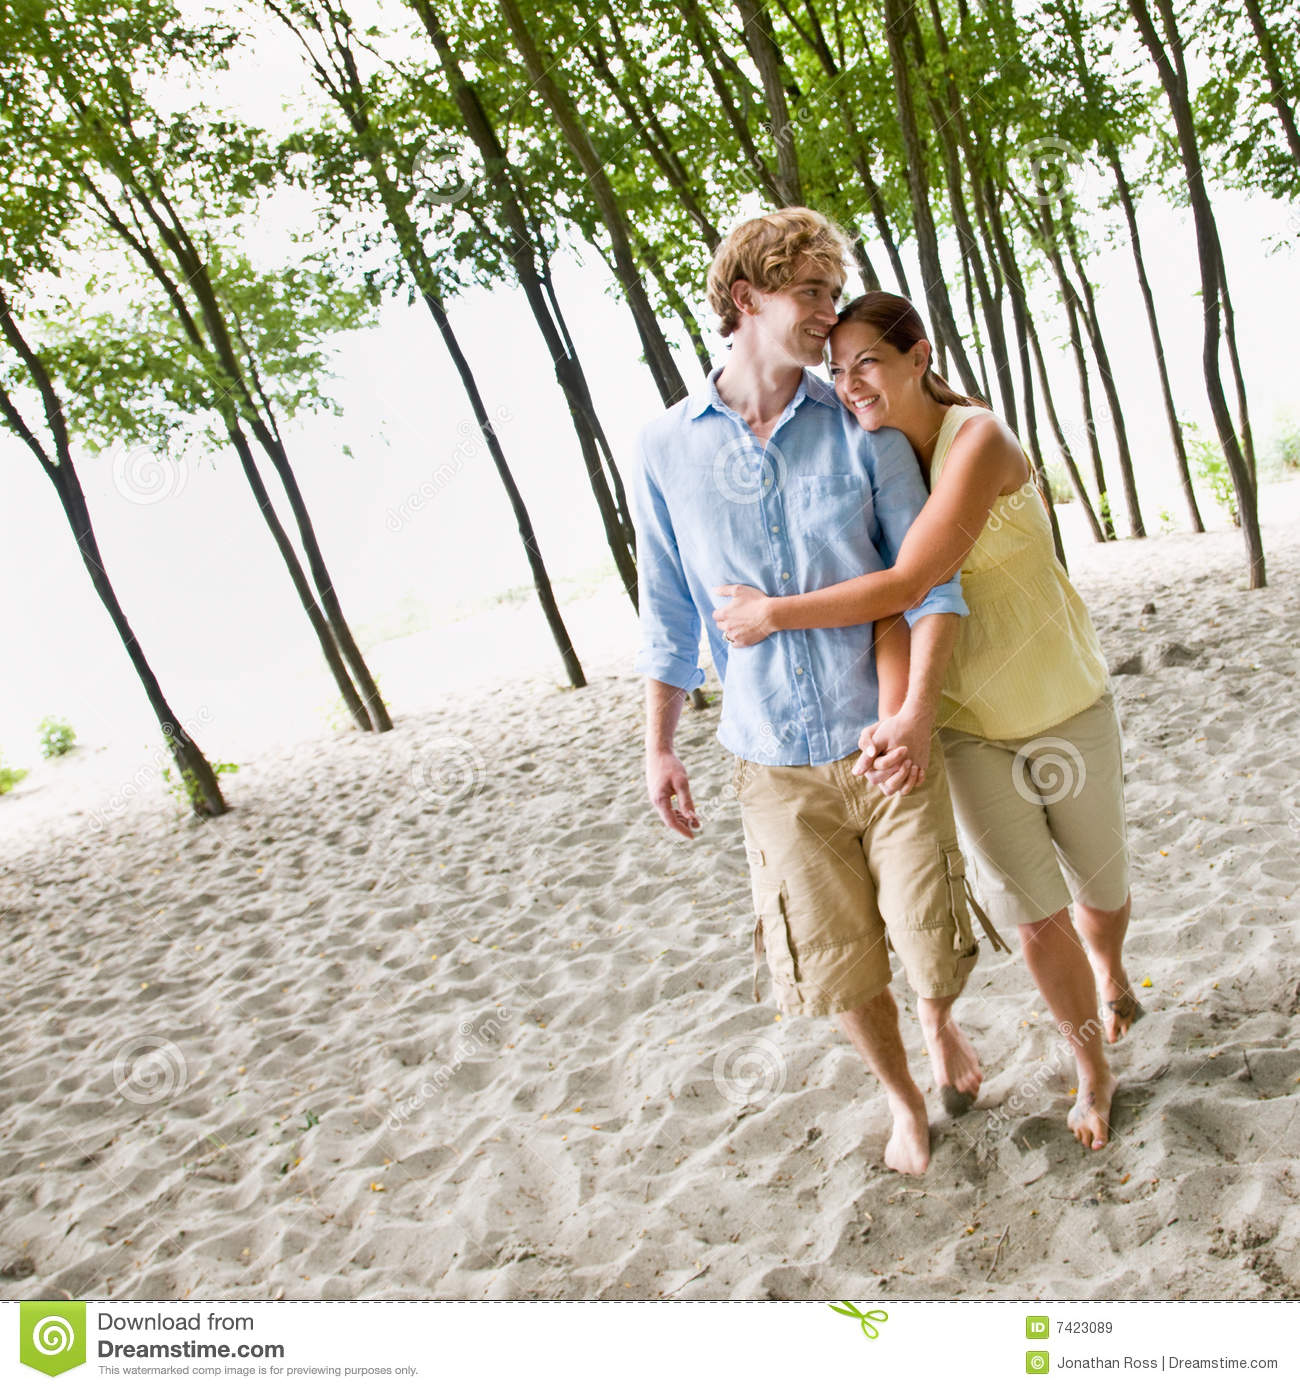 Couple At The Beach Stock Image Image Of Caucasian: Couple Hugging At Beach Stock Image. Image Of Natural